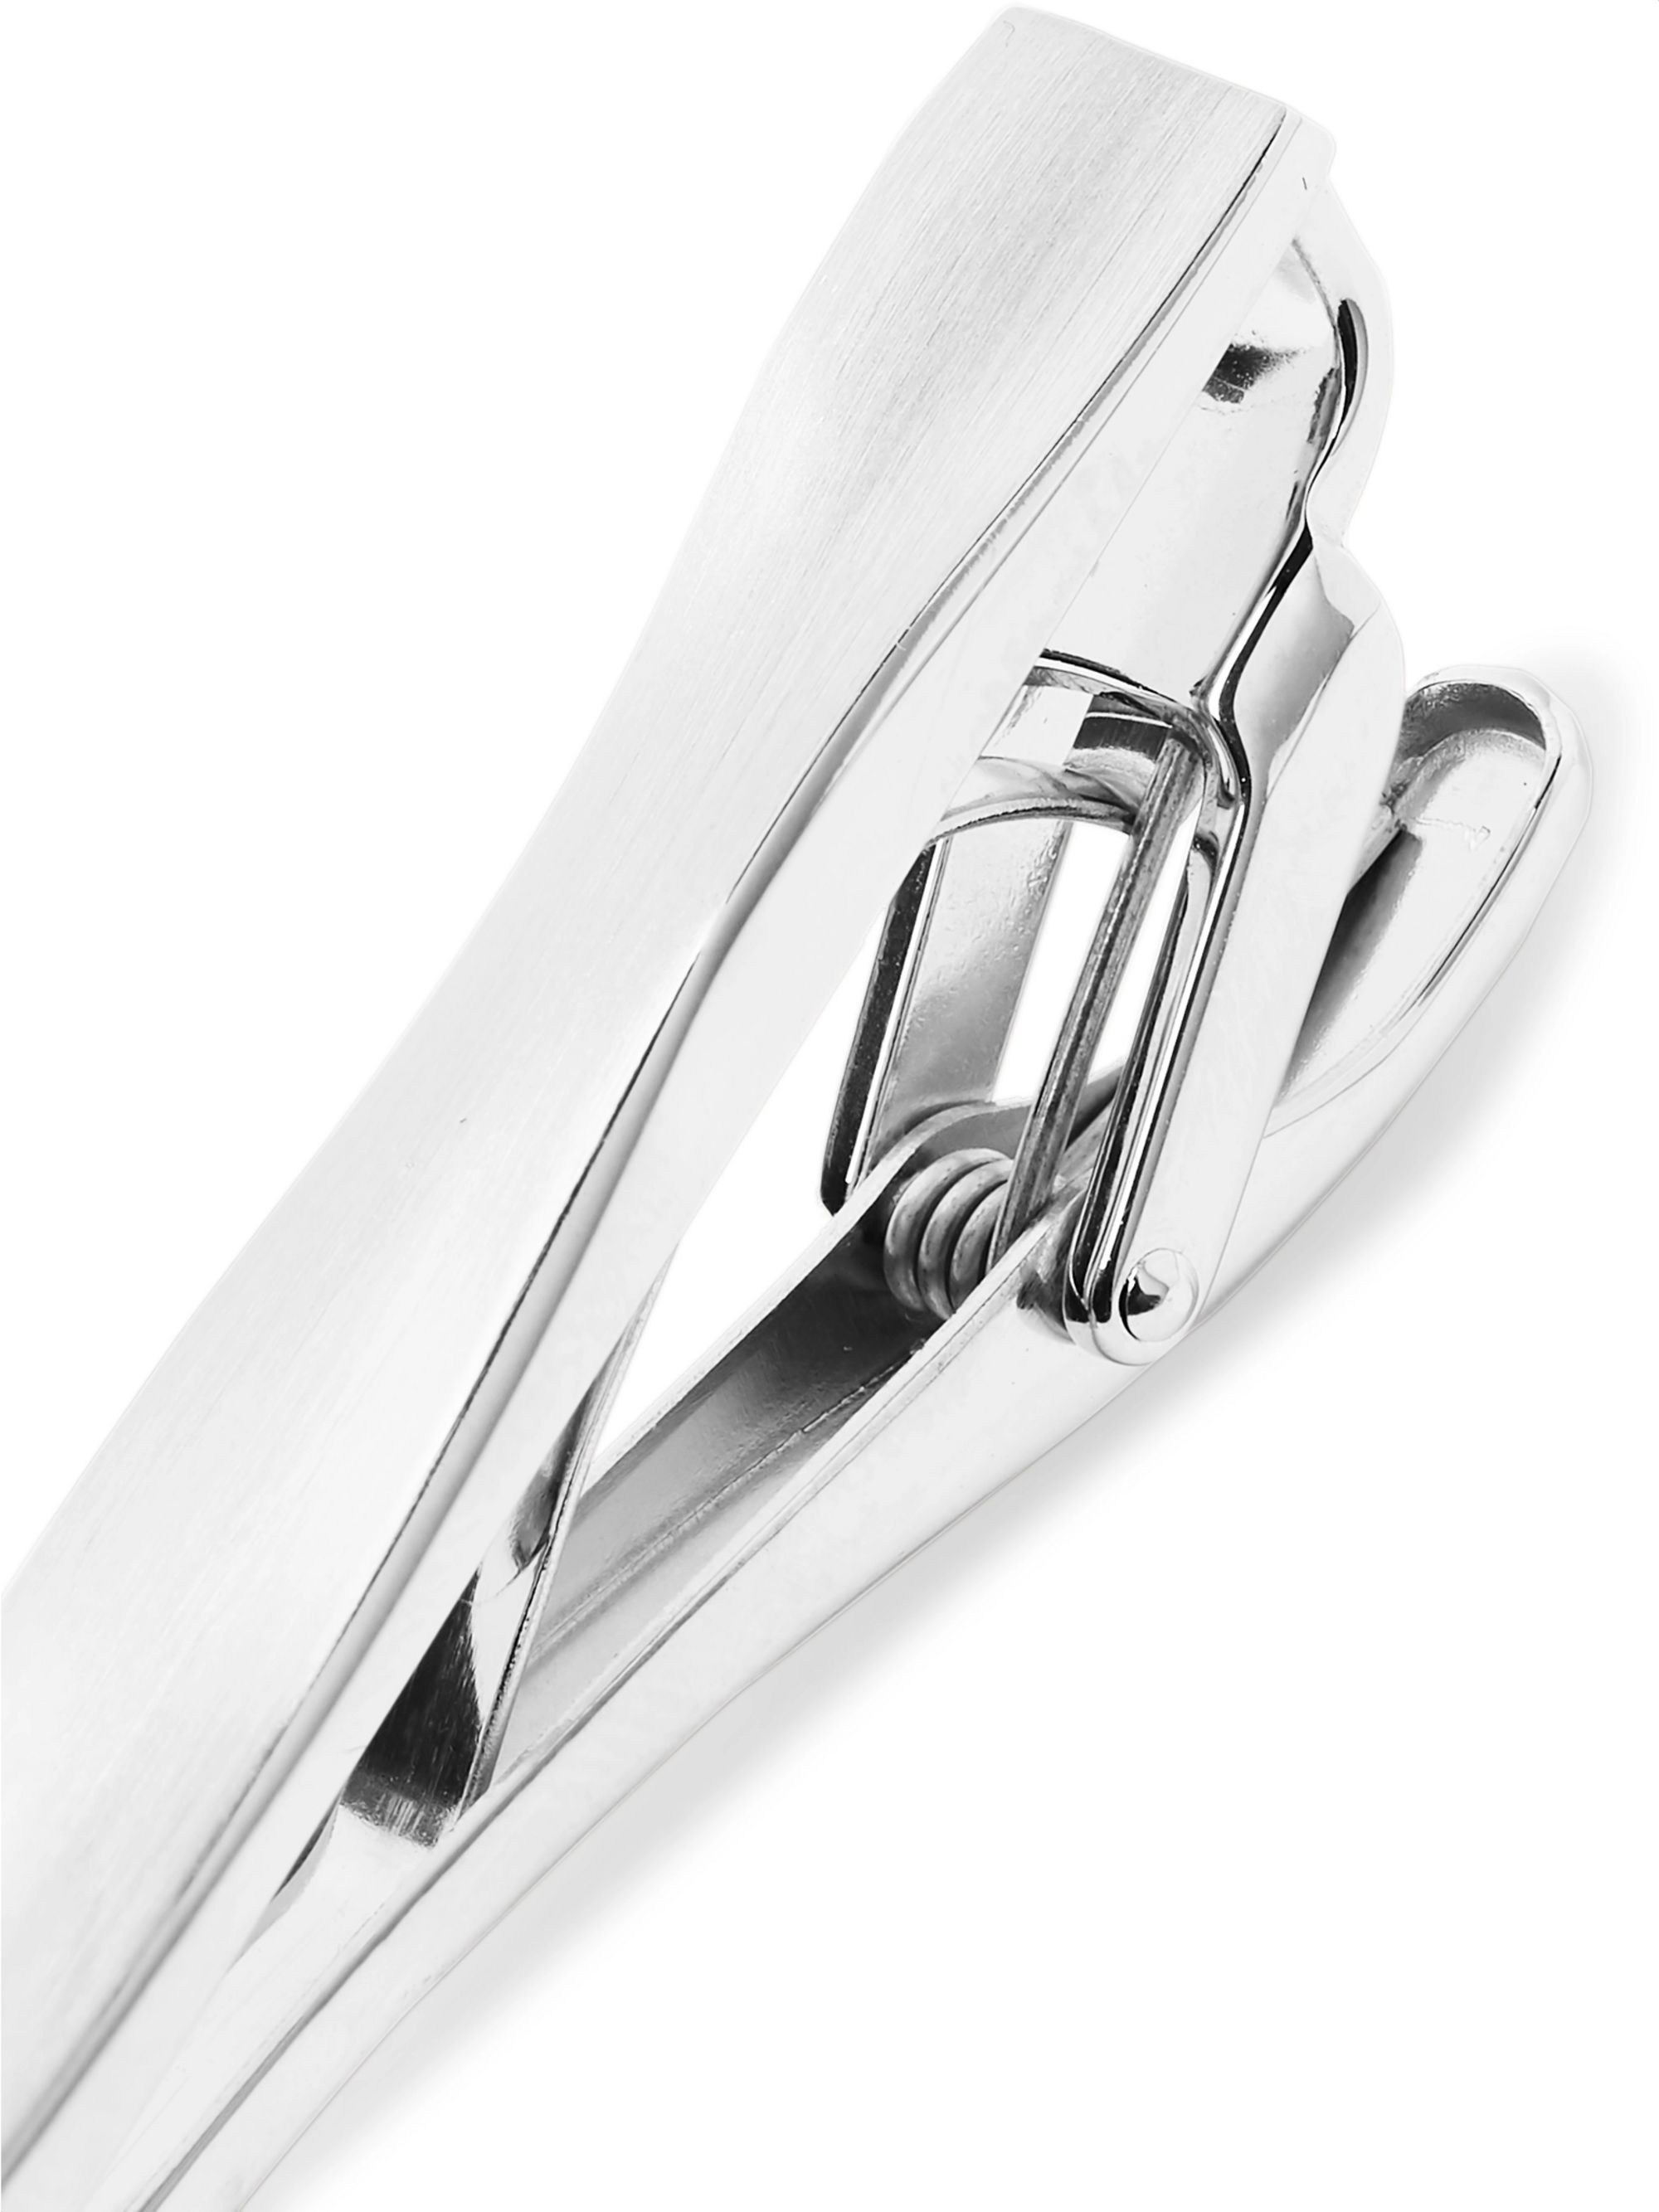 Lanvin Brushed Rhodium-Plated Tie Clip